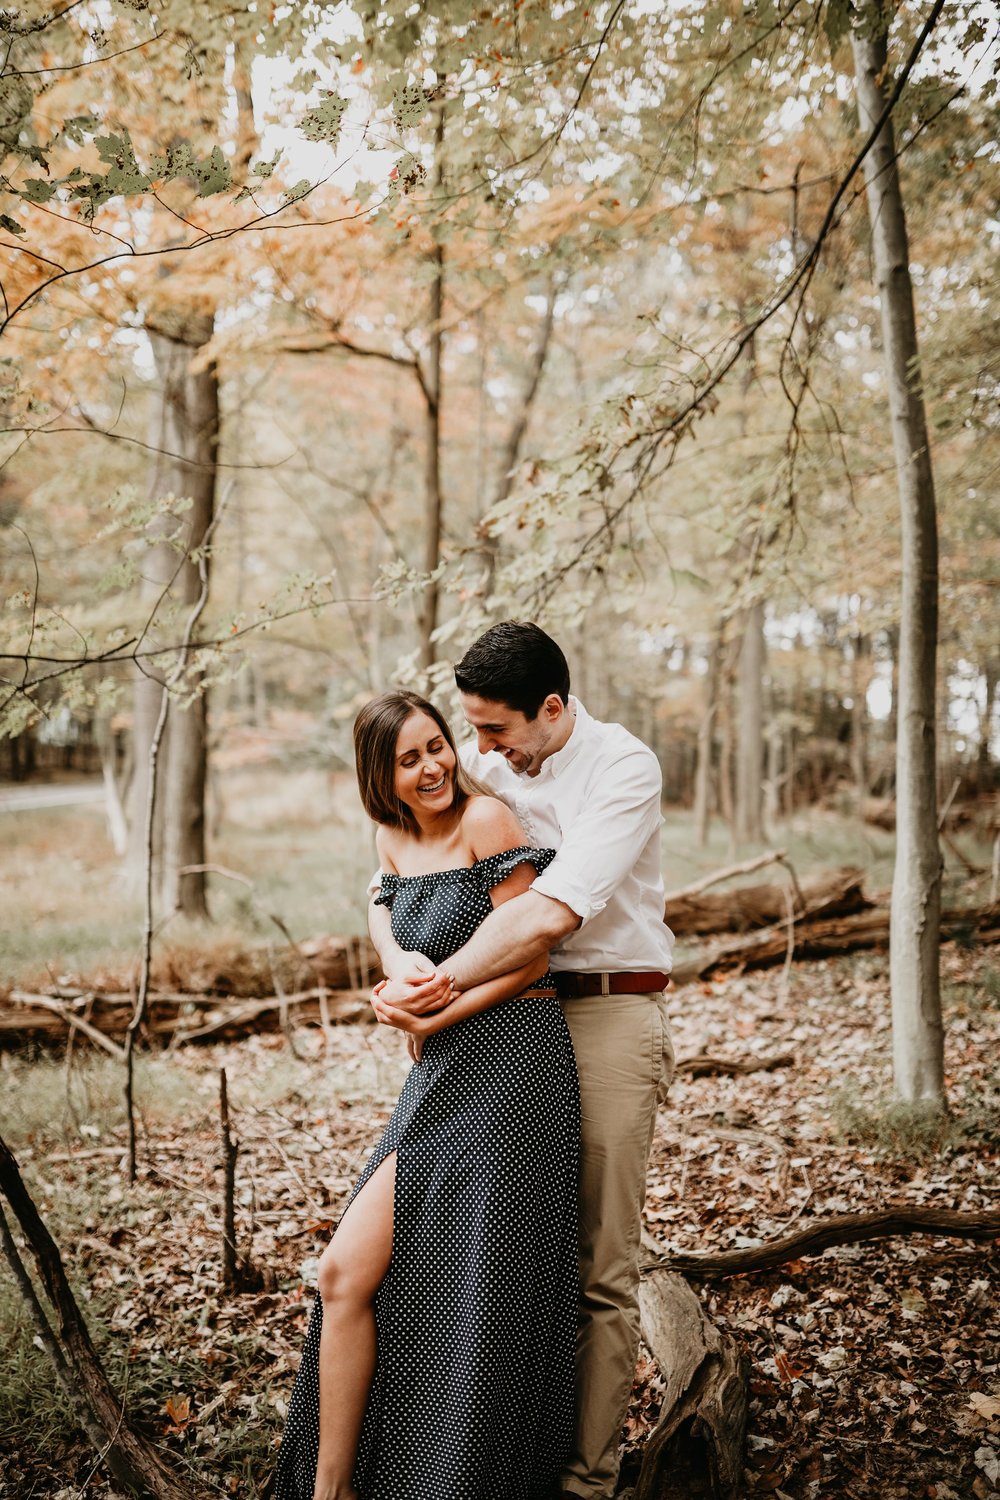 Genesis + Octavio Engagements 1 (1 of 1).jpg